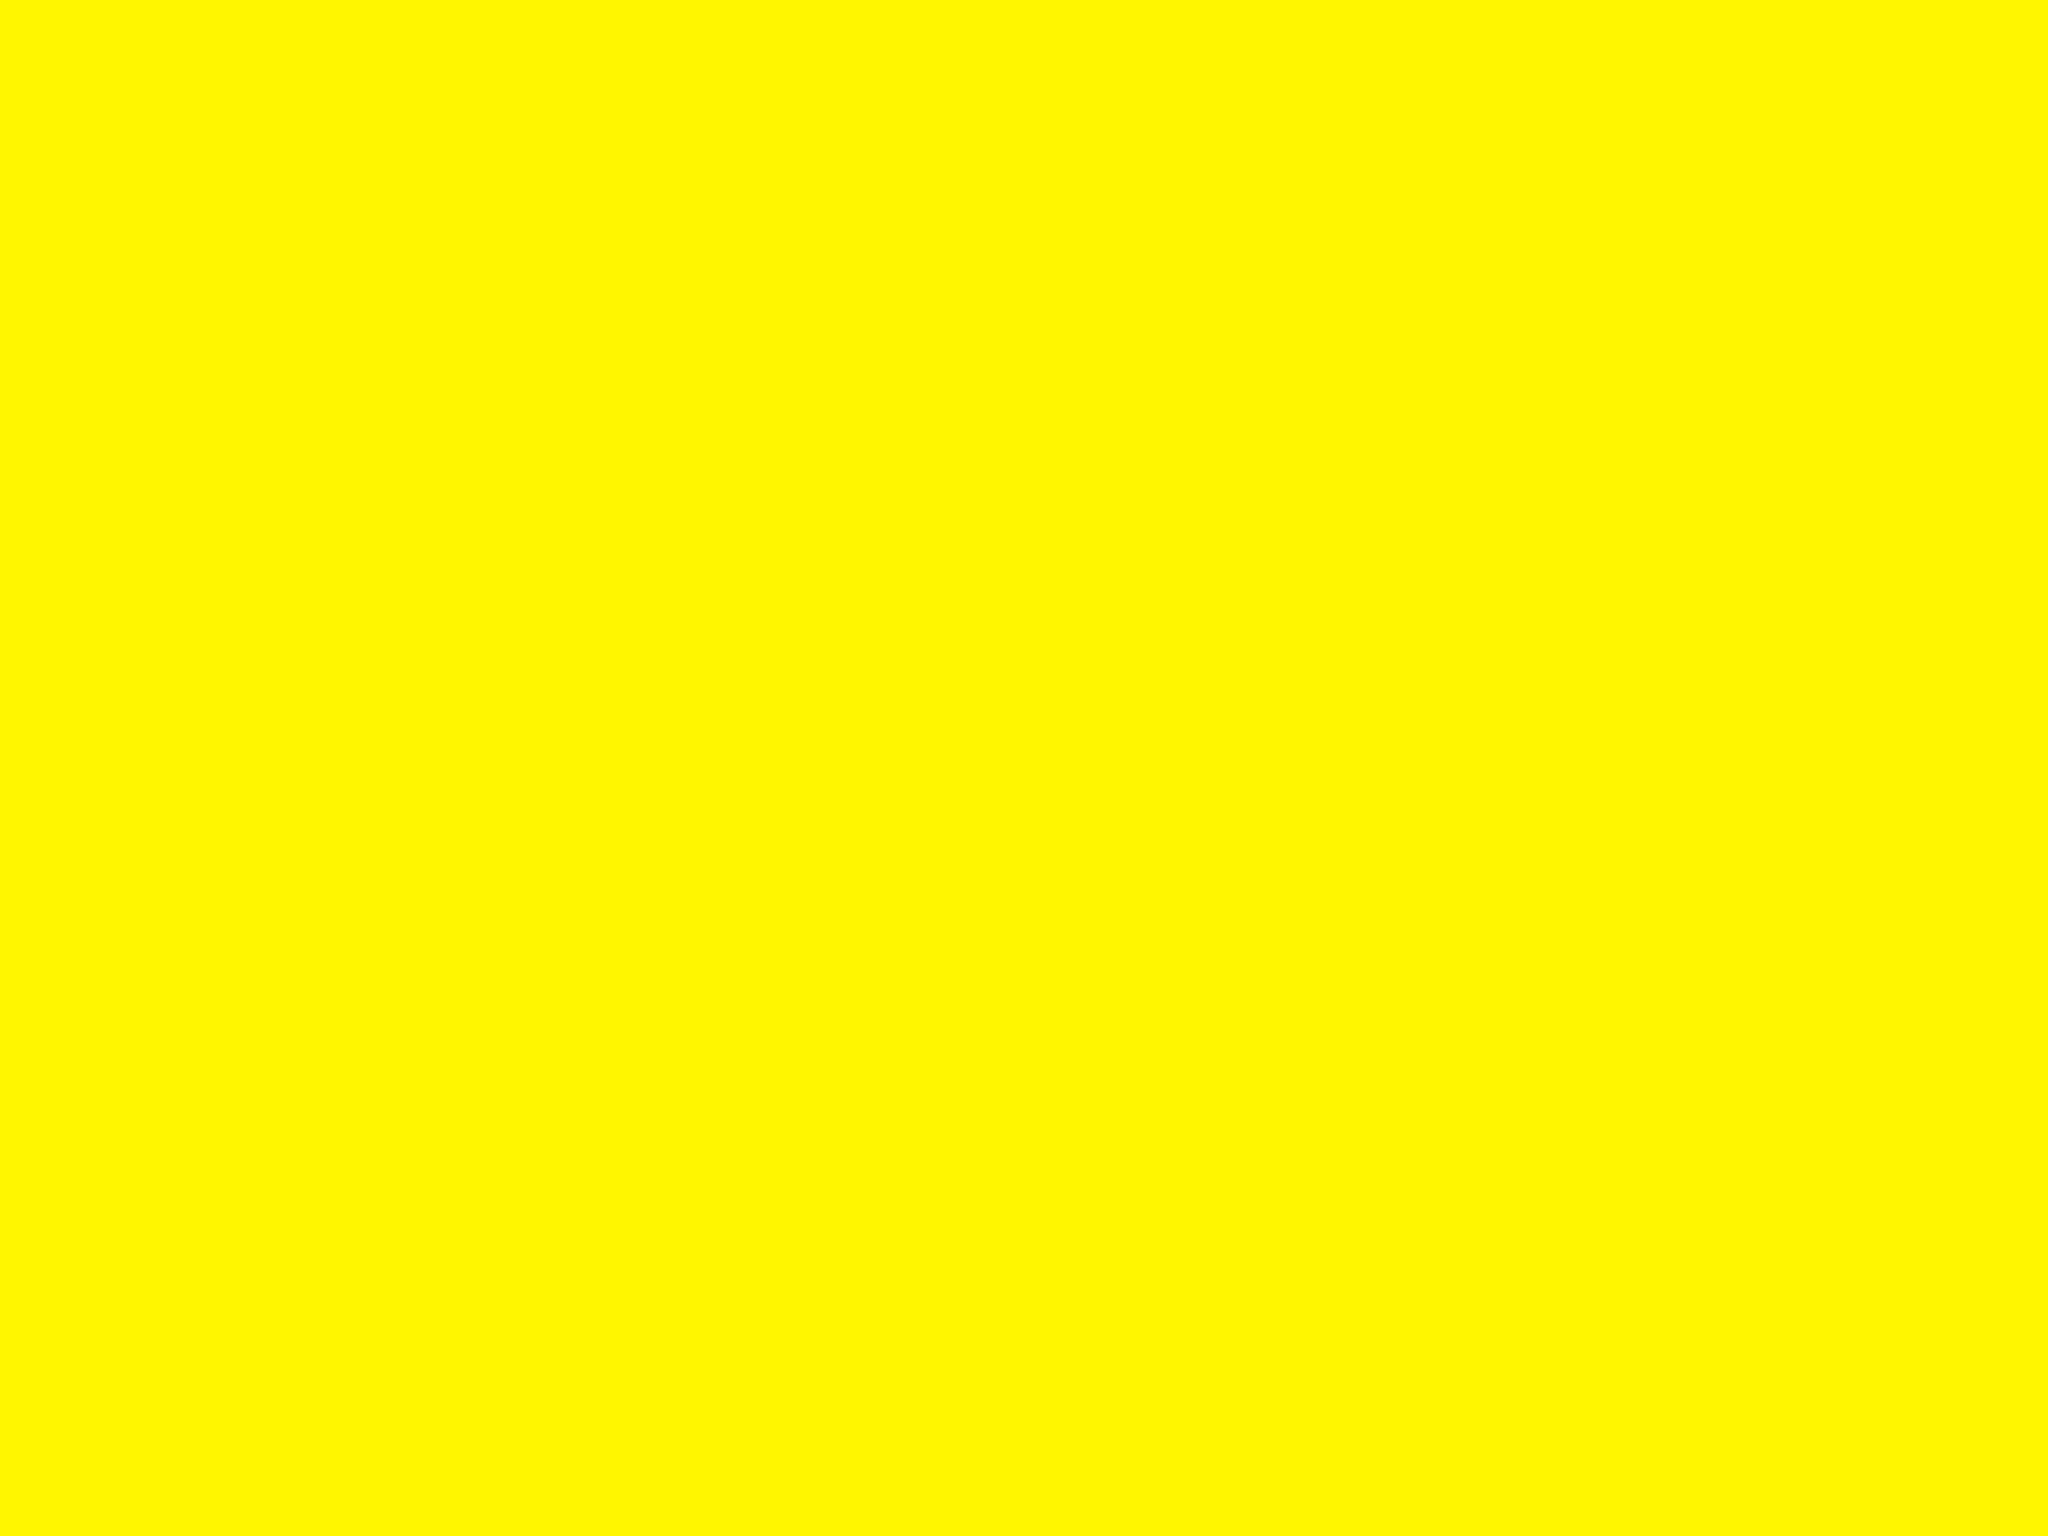 2048x1536 Cadmium Yellow Solid Color Background